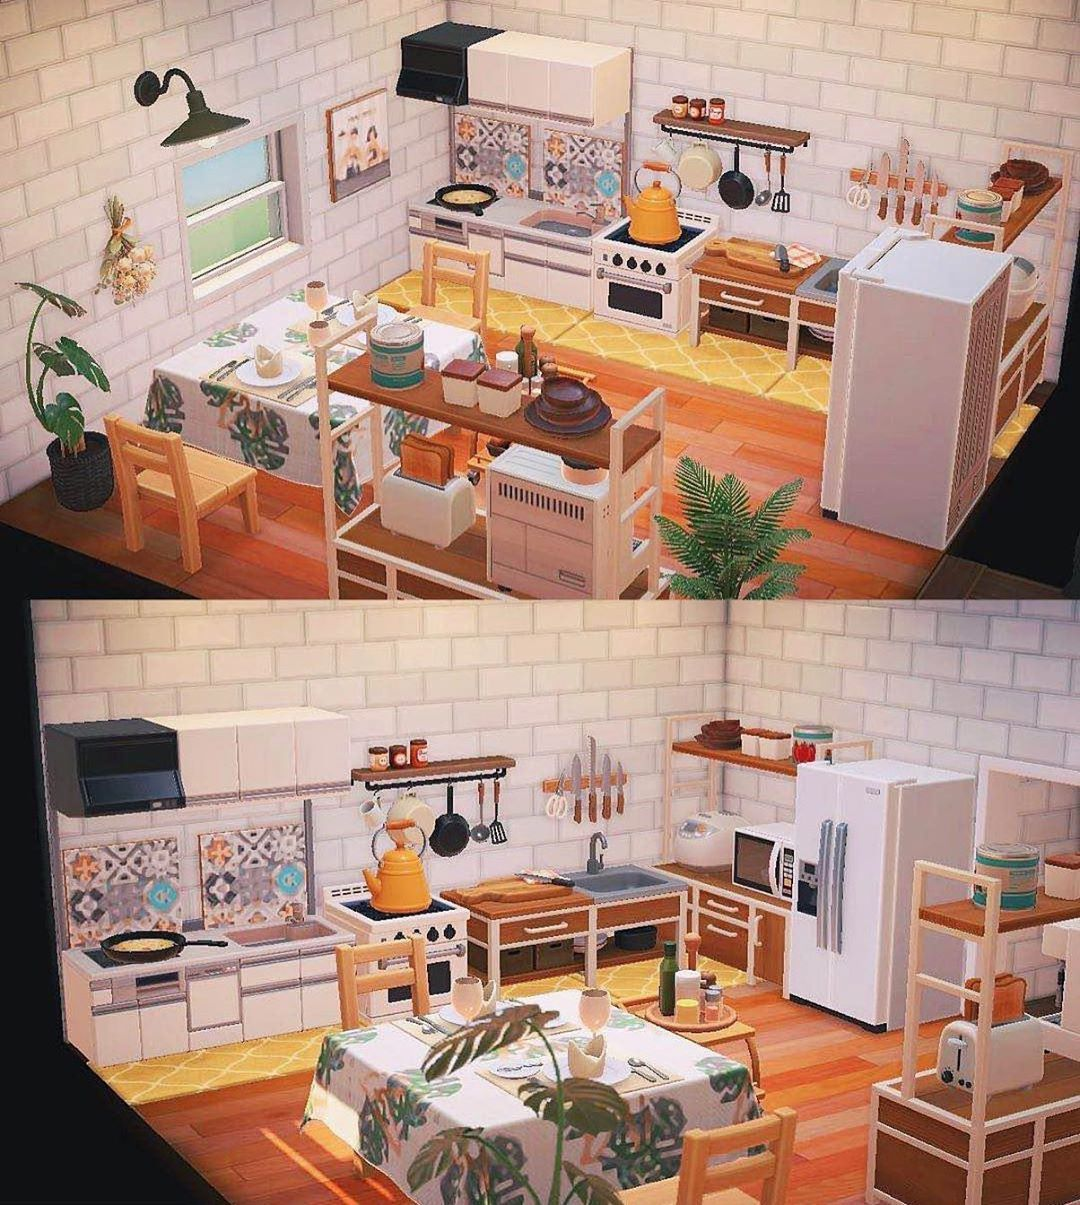 Animal Crossing New Horizons On Instagram Loving This Ironwood Kitchen Credit User Neilc In 2020 Animal Crossing Villagers Animal Crossing Animal Crossing Game